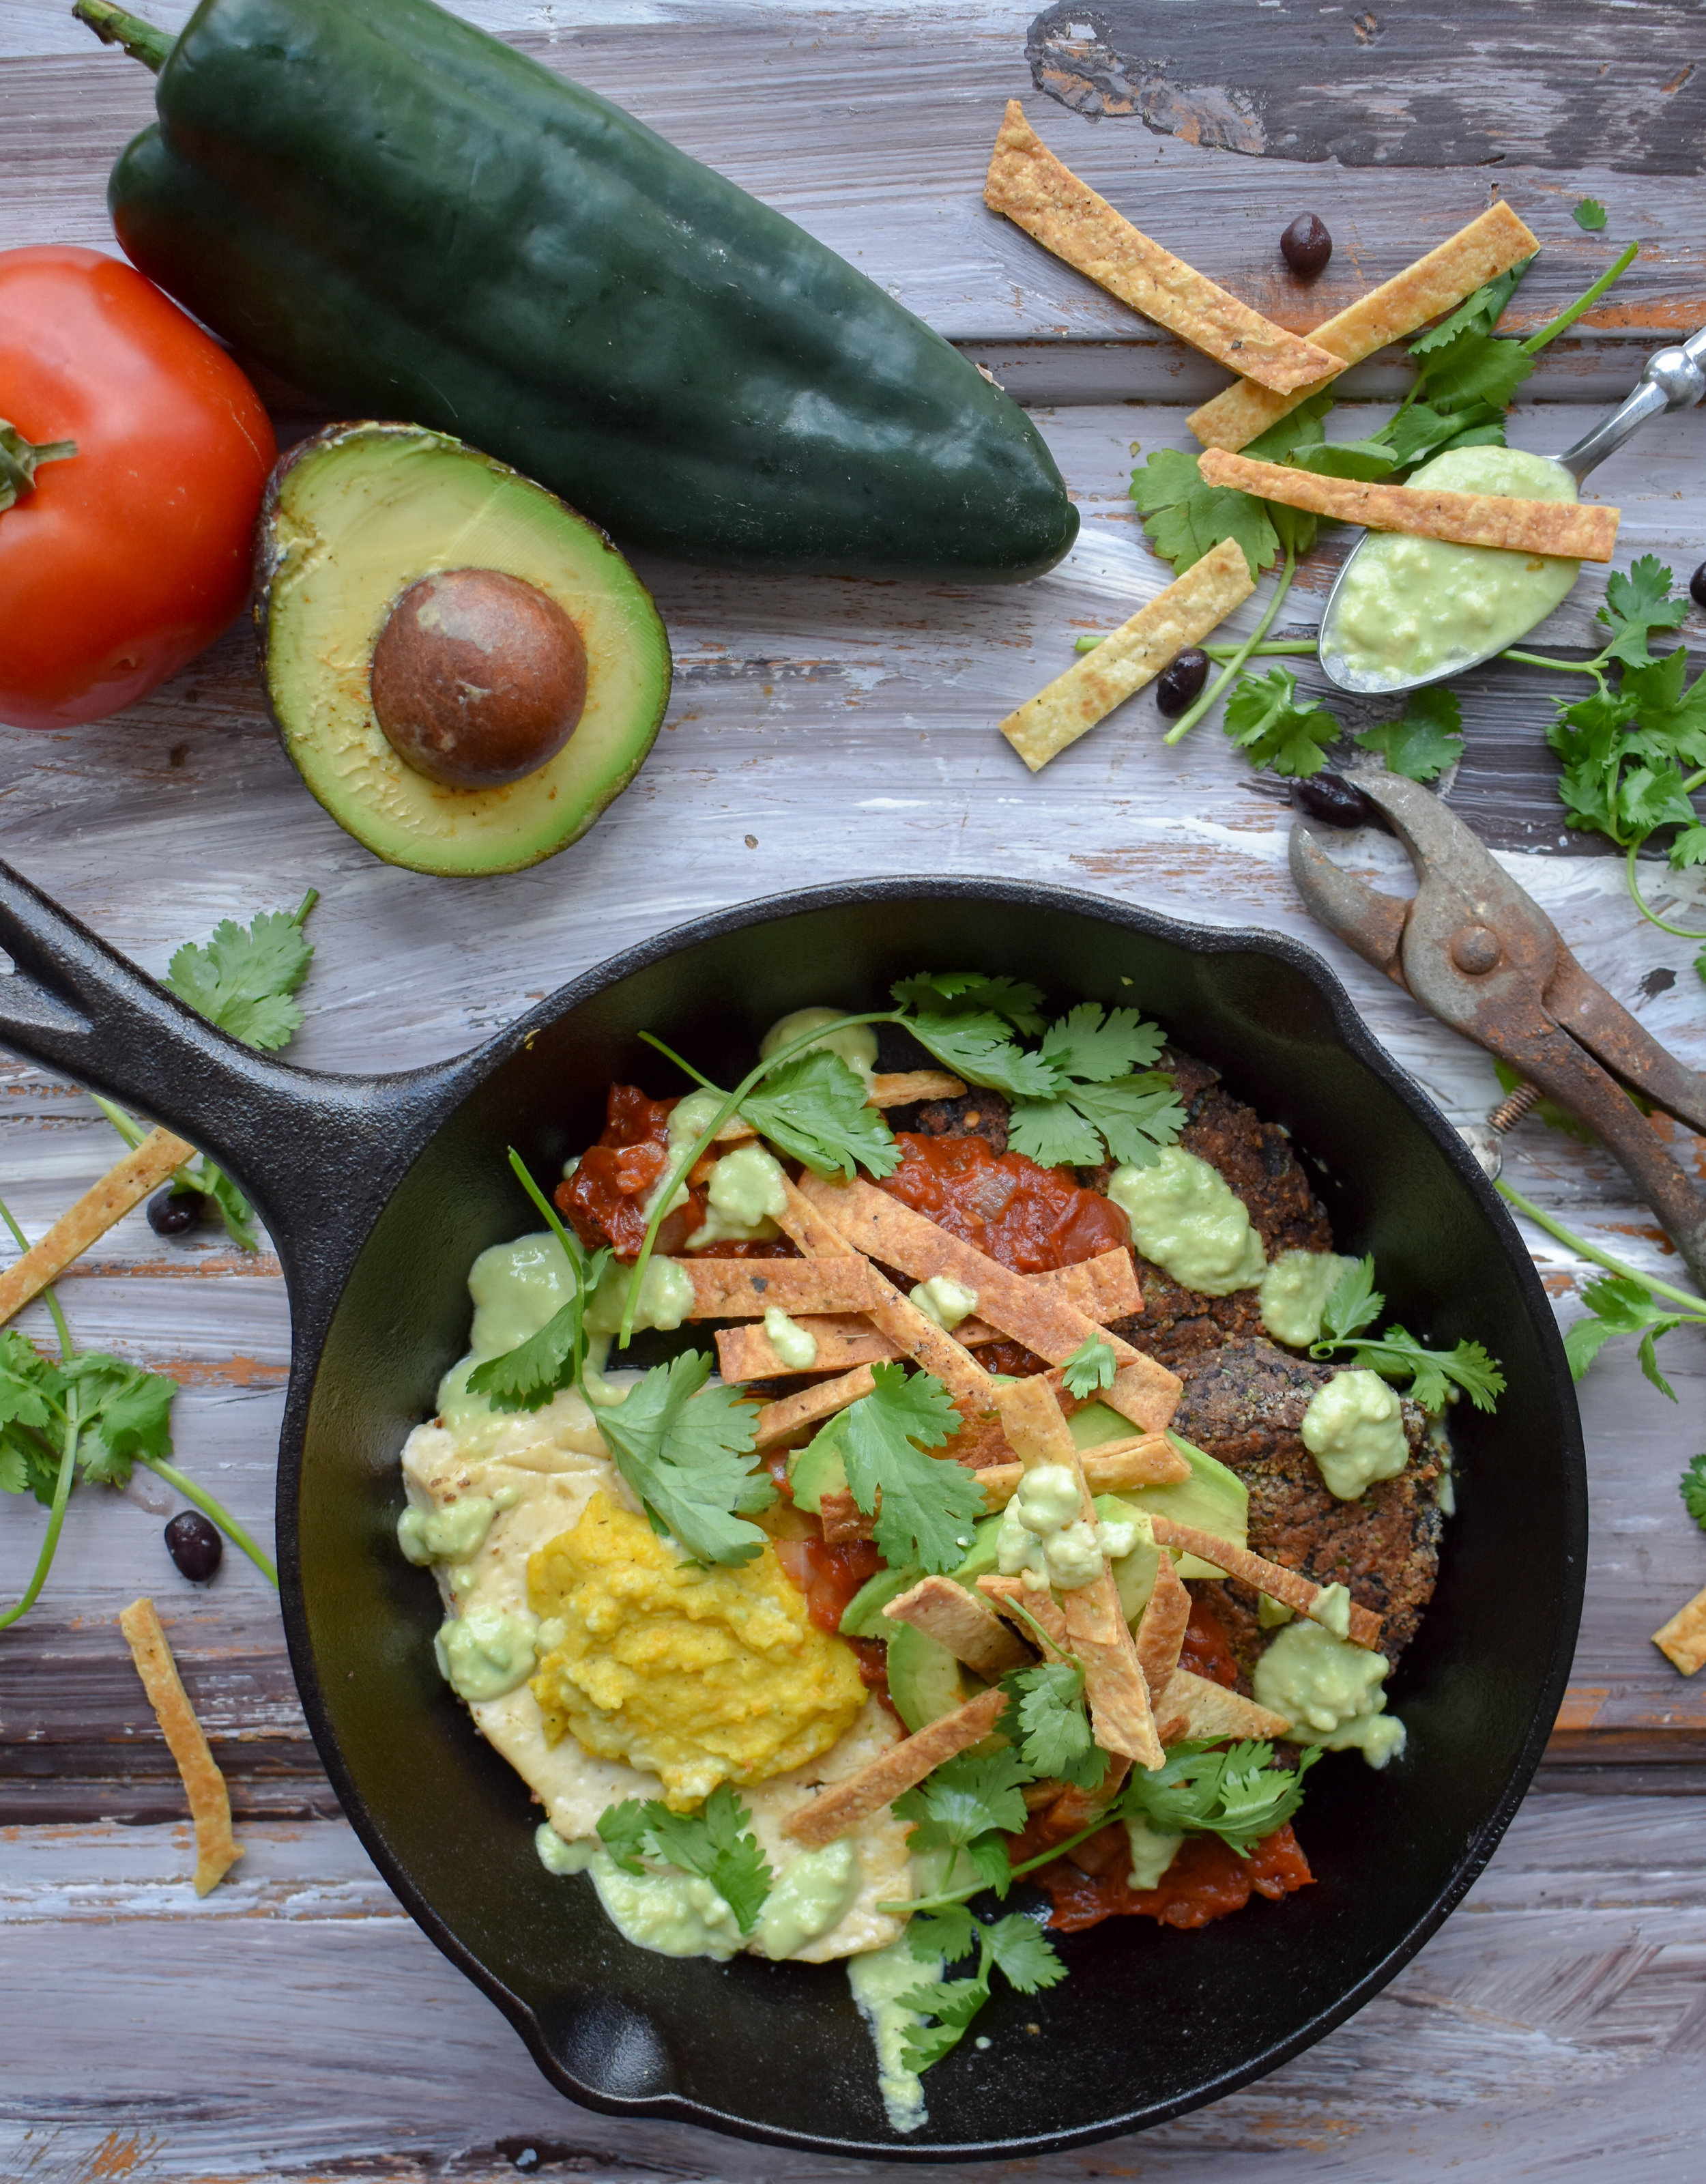 13. To serve, plate with two black bean cakes, one plant egg (add the yolk), pour on 1/4 of the ranchero sauce, add some fresh avocado slices, cilantro, tortilla strips, and drizzle on the avocado crema. YUM YUM YUM YUM YUM !!!!